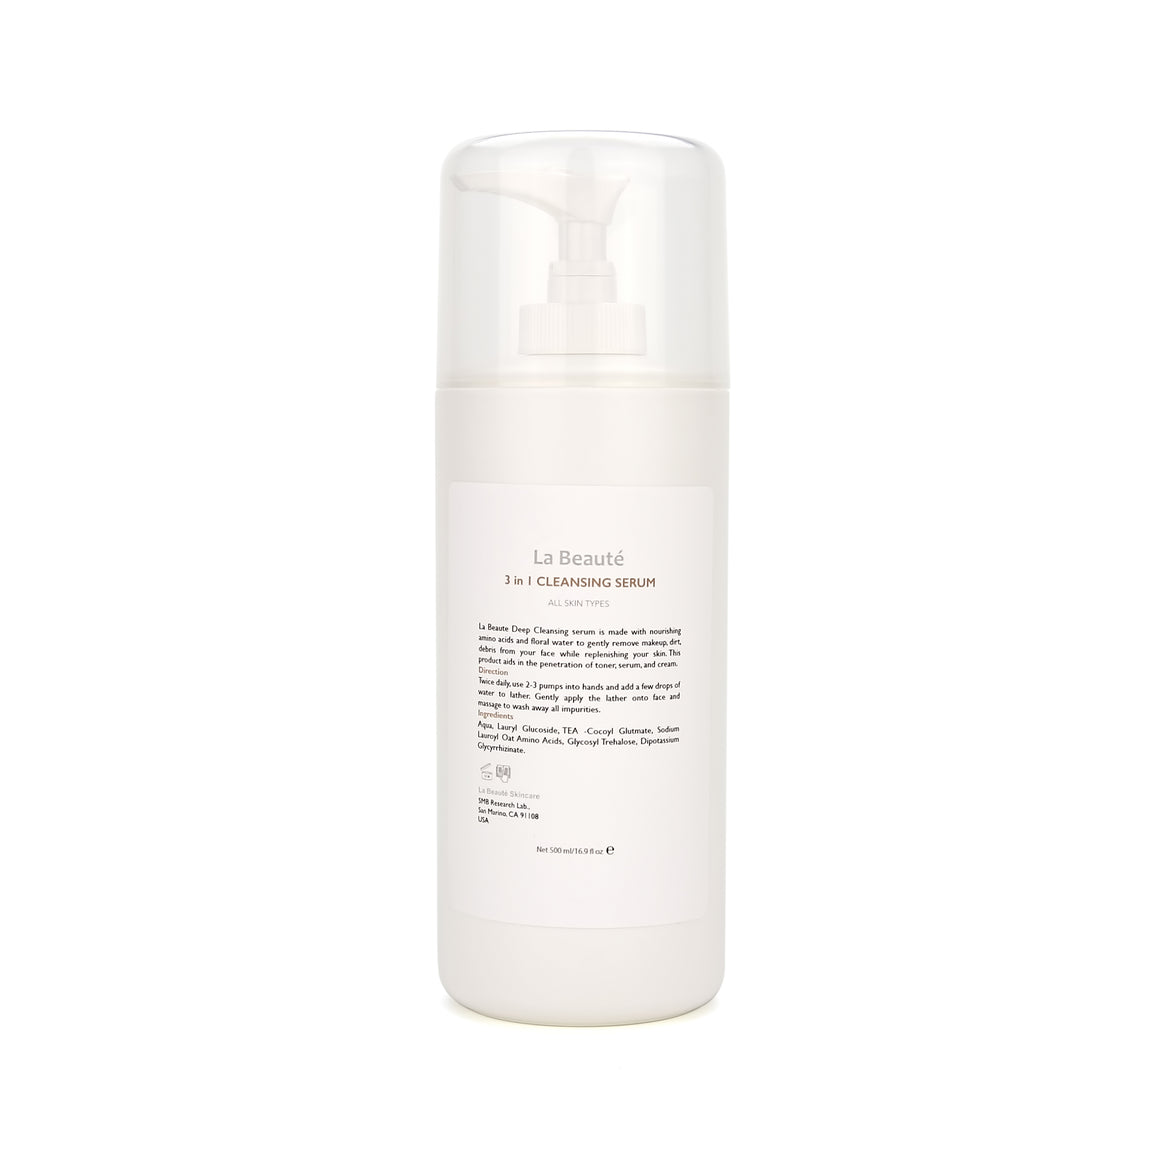 La Beaute - 3 in 1 Cleansing Serum 500ml WS